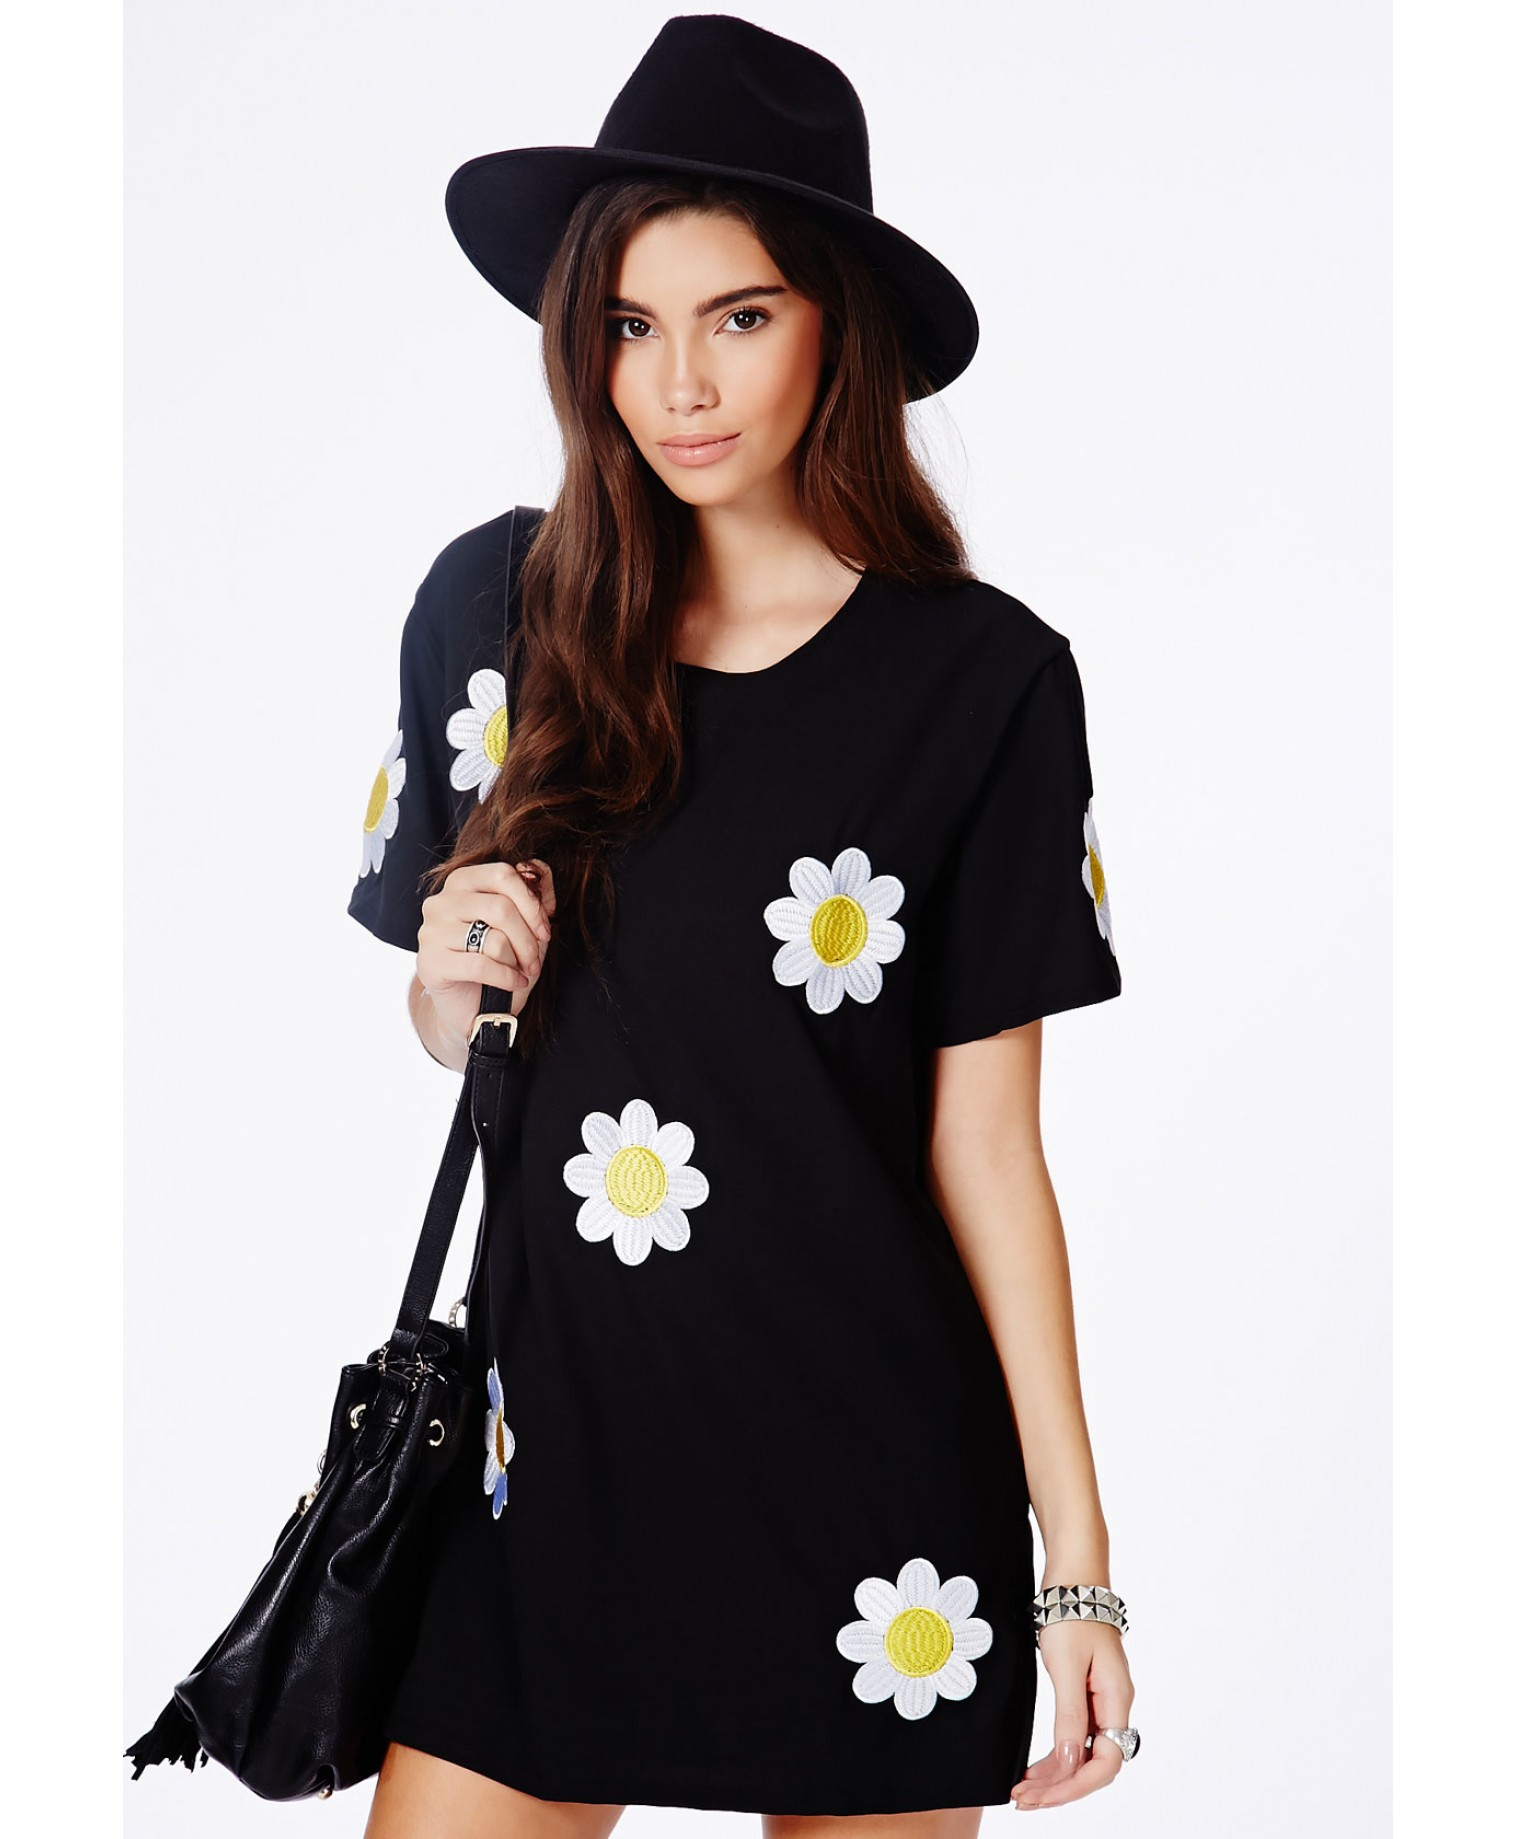 Calanta black oversized daisy shift dress